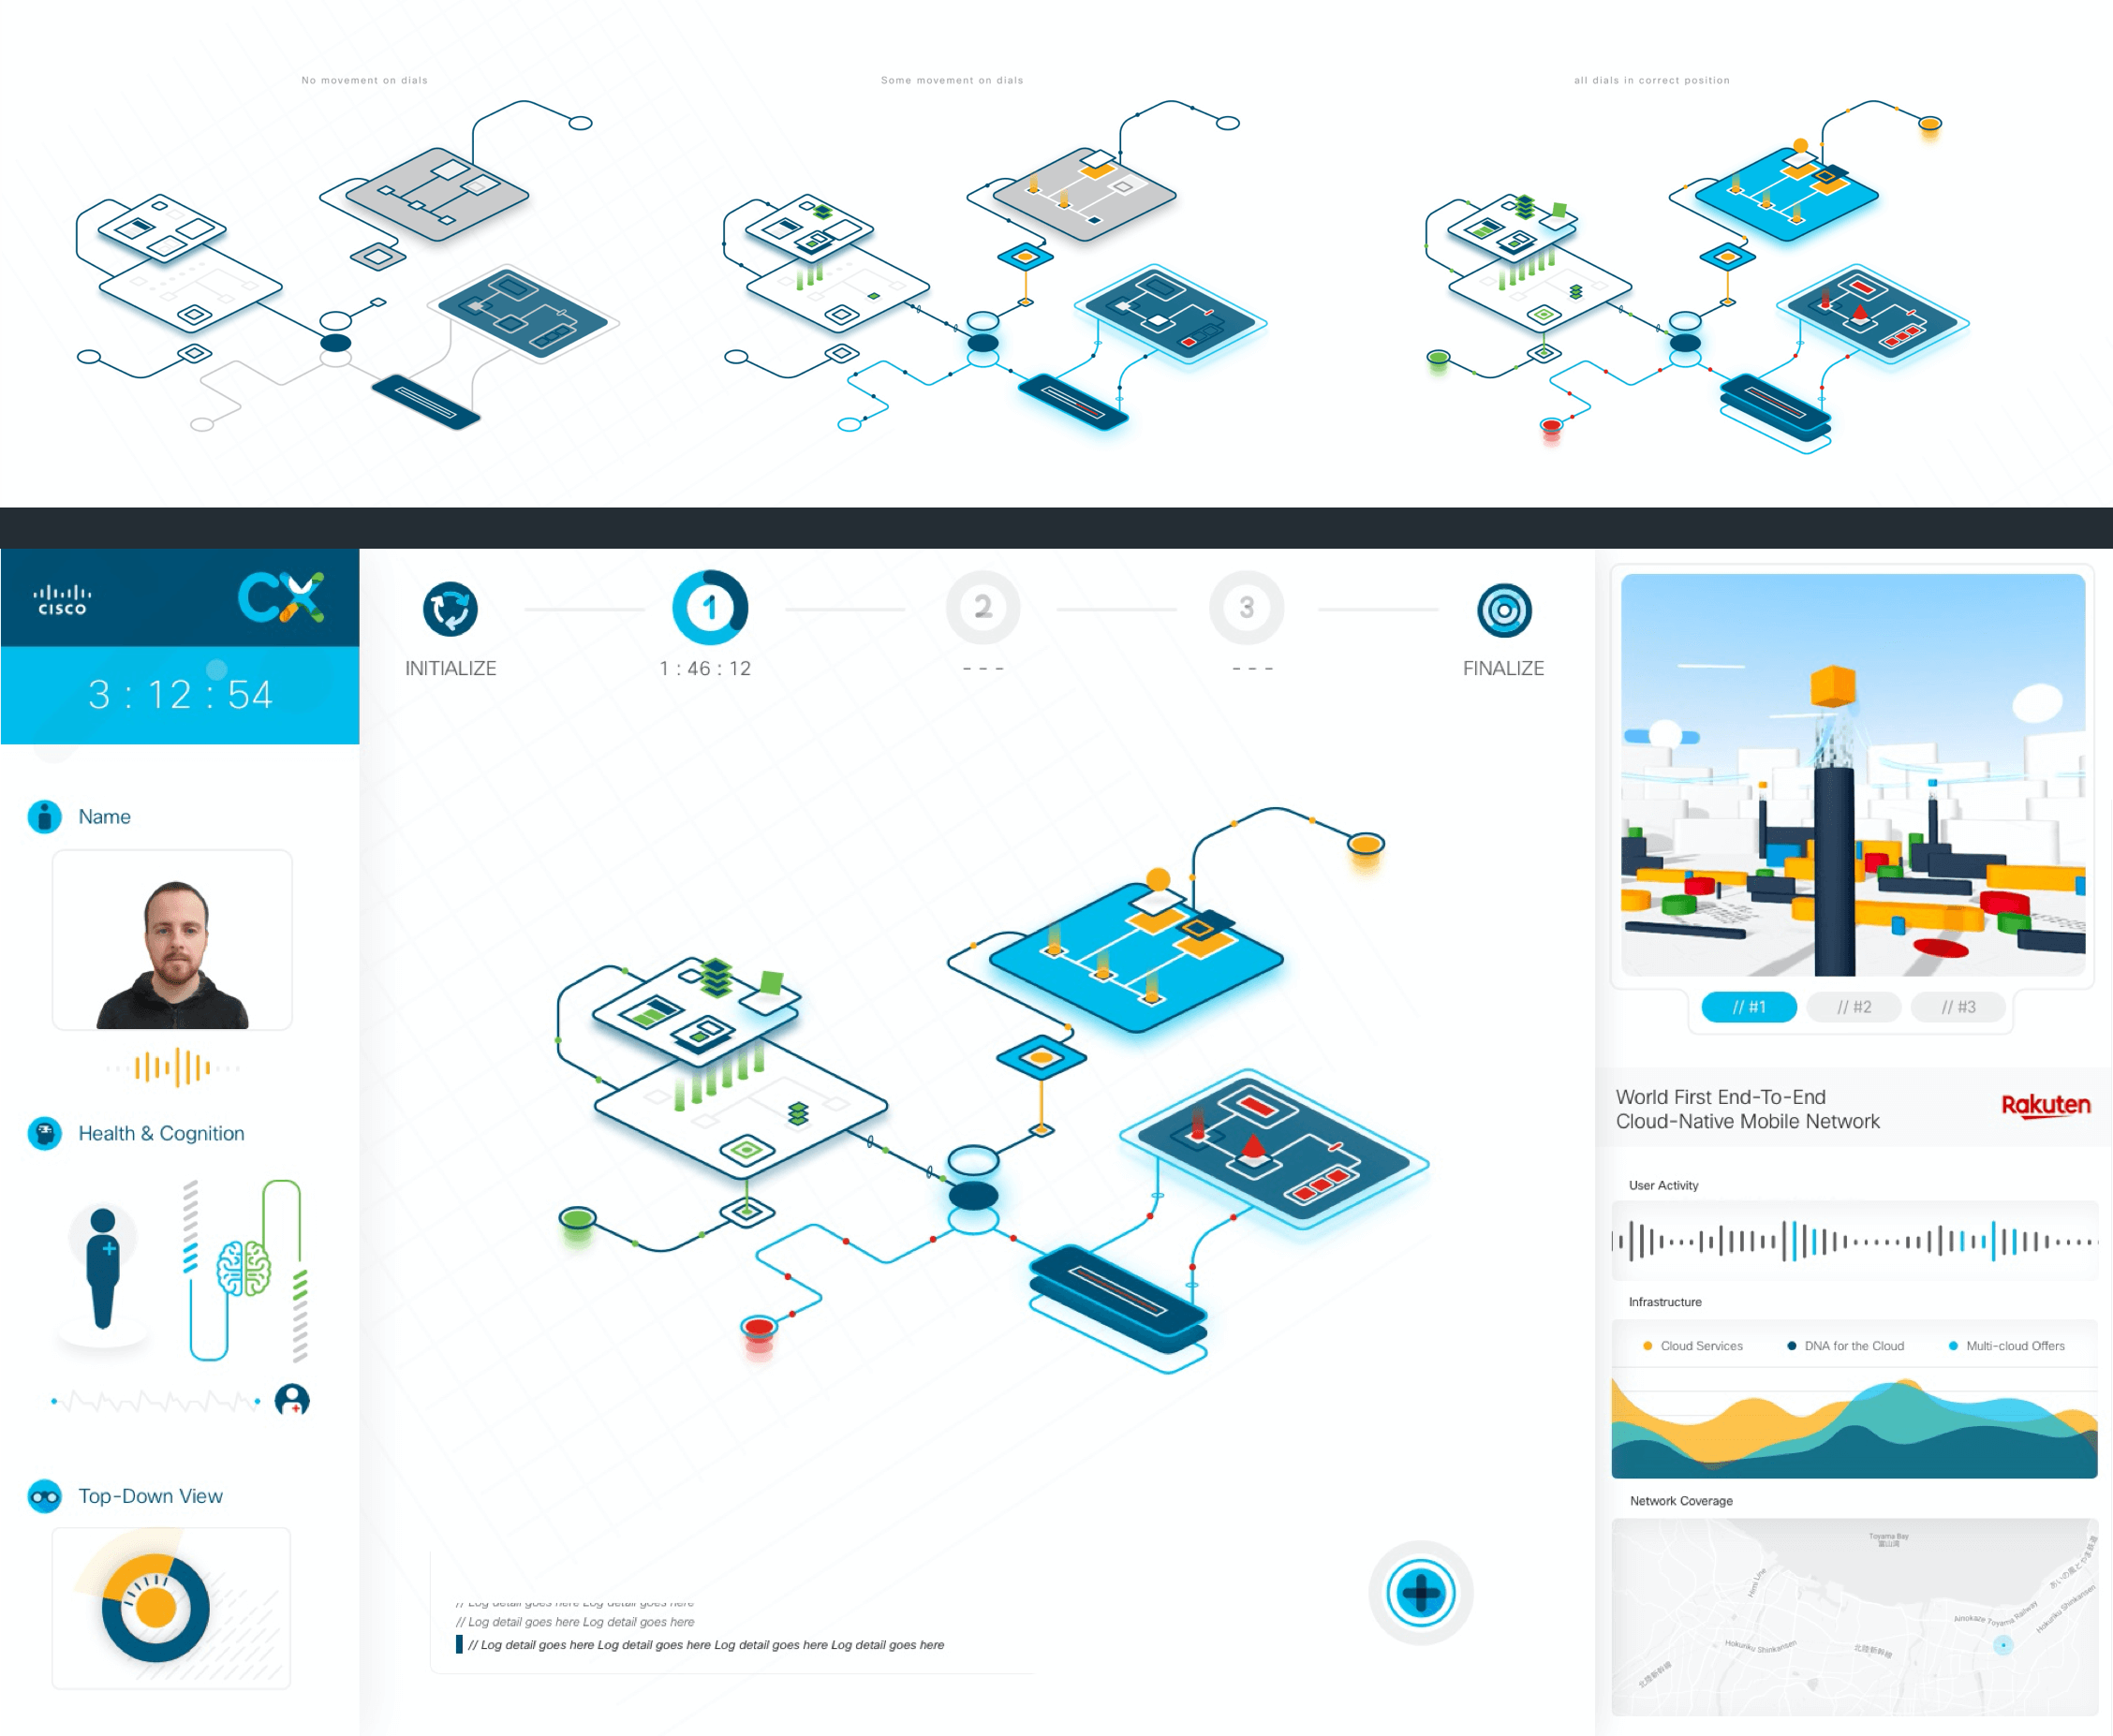 The game 1 UI for the CX Expert dashboard